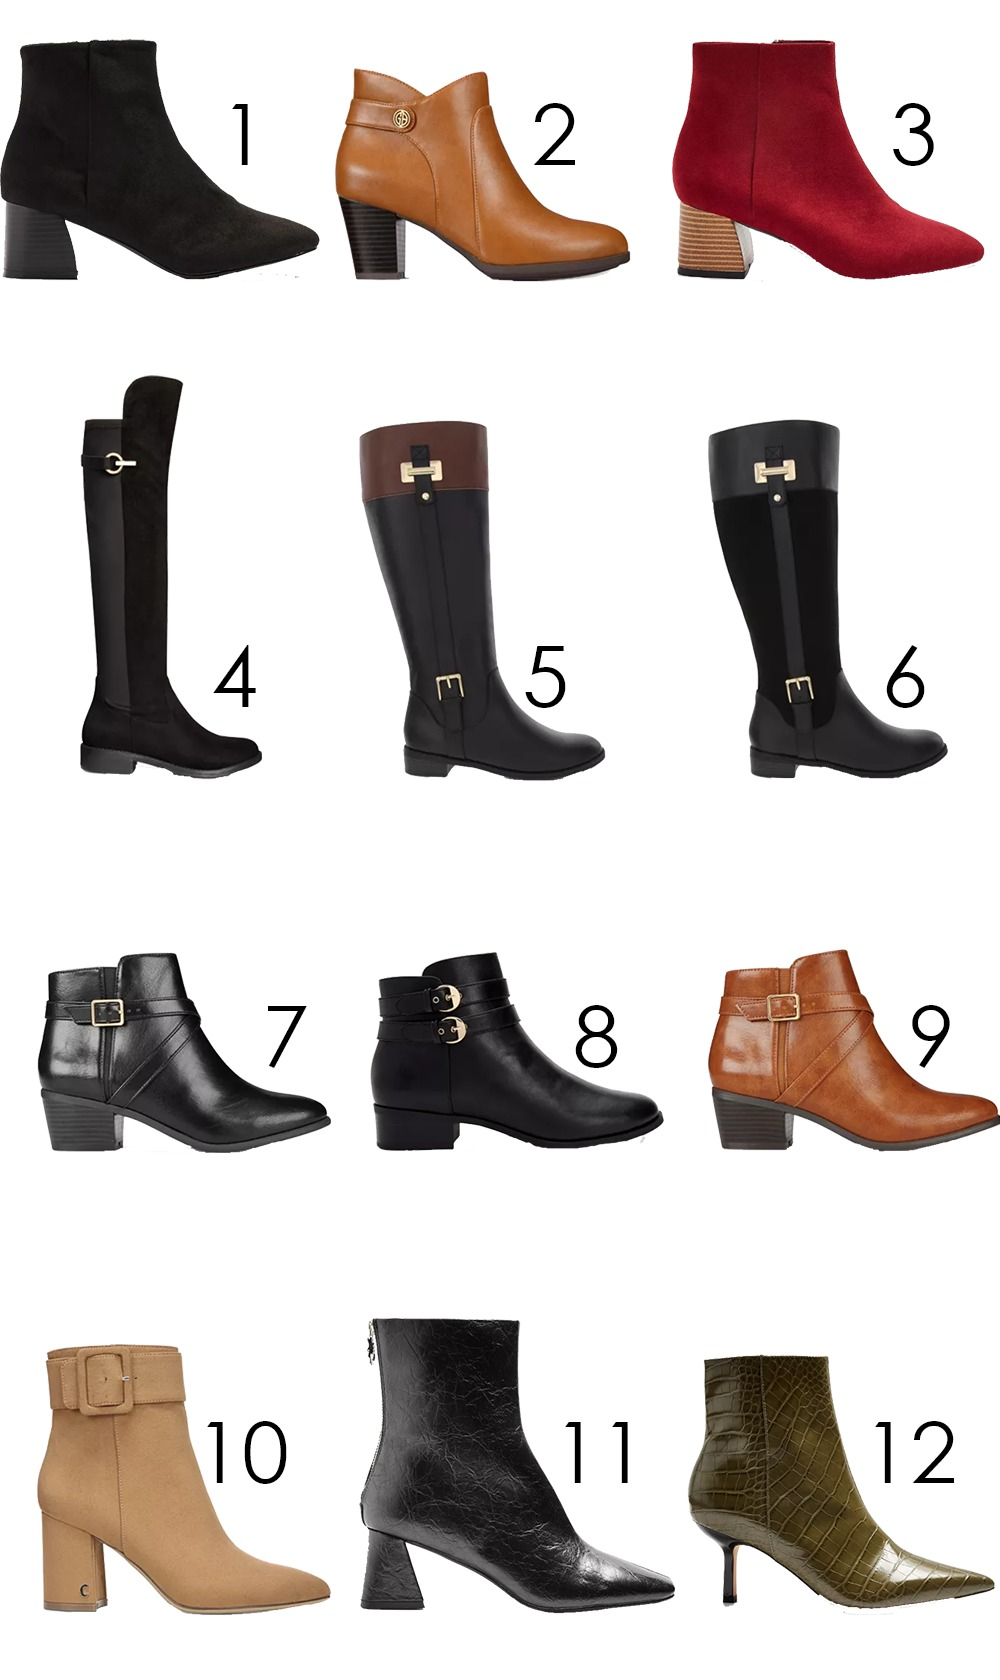 Vegan Leather Boots Under $100 I DreaminLace.com